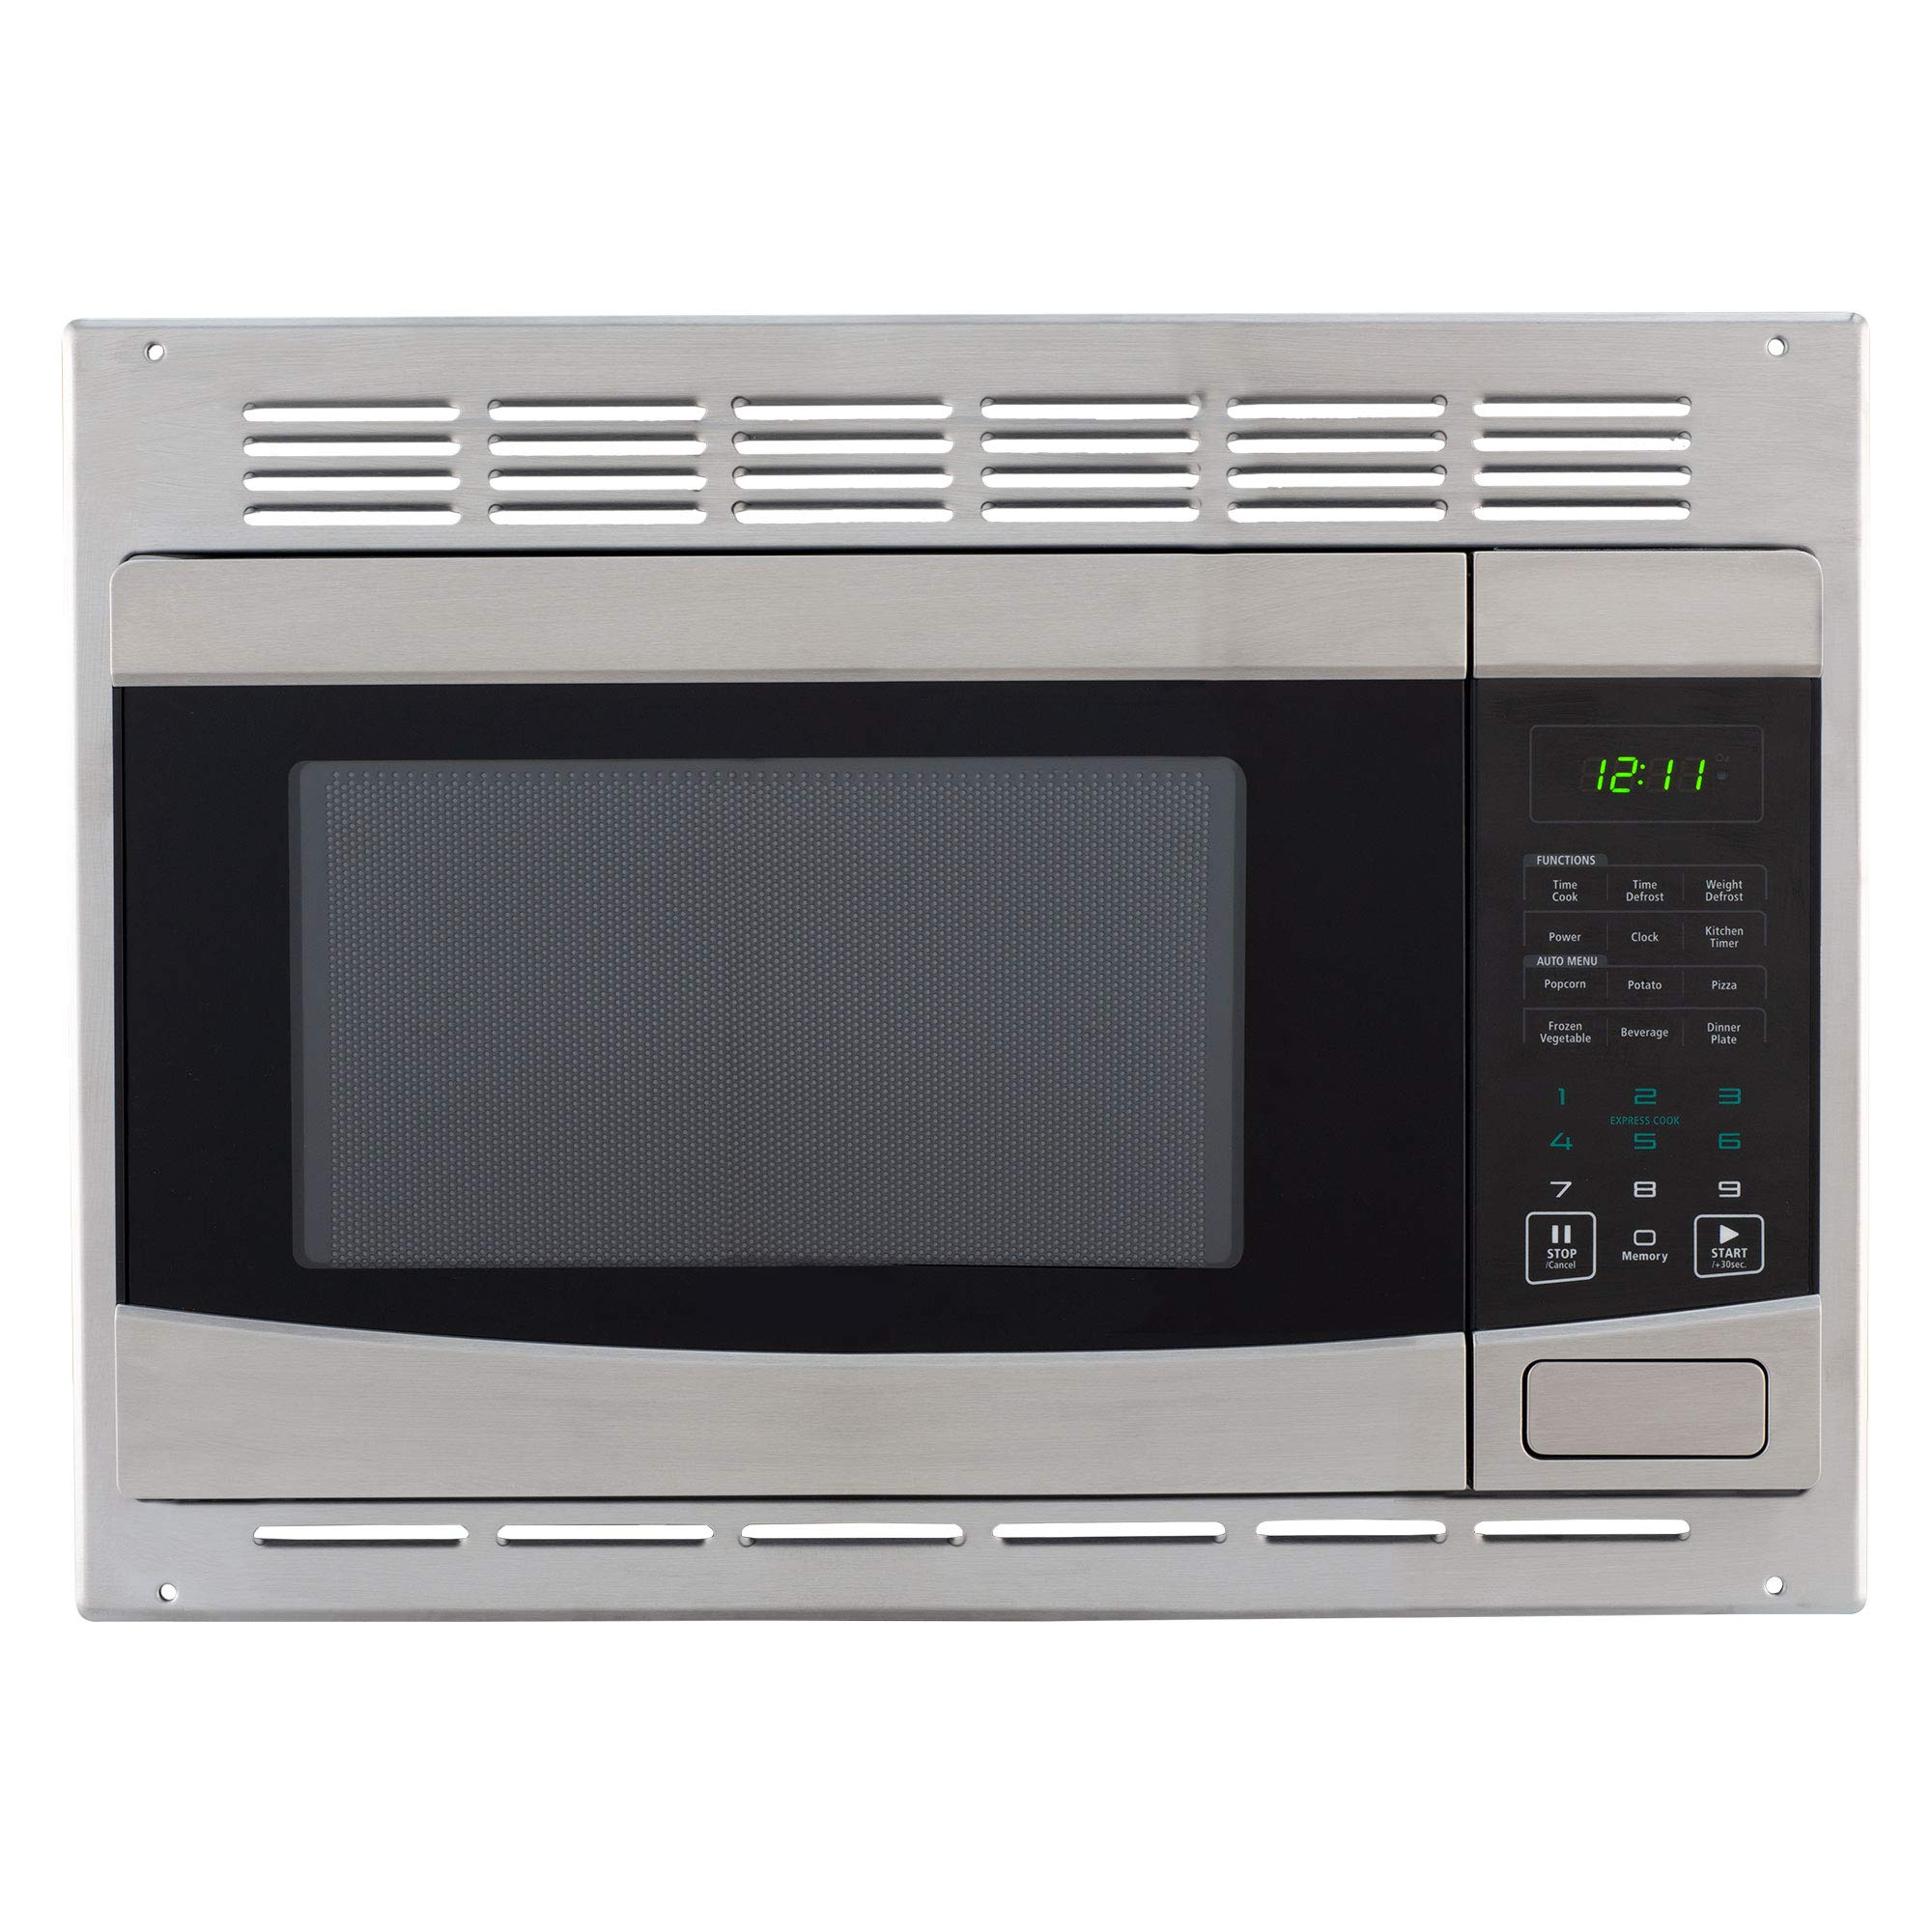 RecPro RV Stainless-Steel Microwave 1.0 cu ft. With Trim Package EM925AQR-S by RecPro (Image #2)